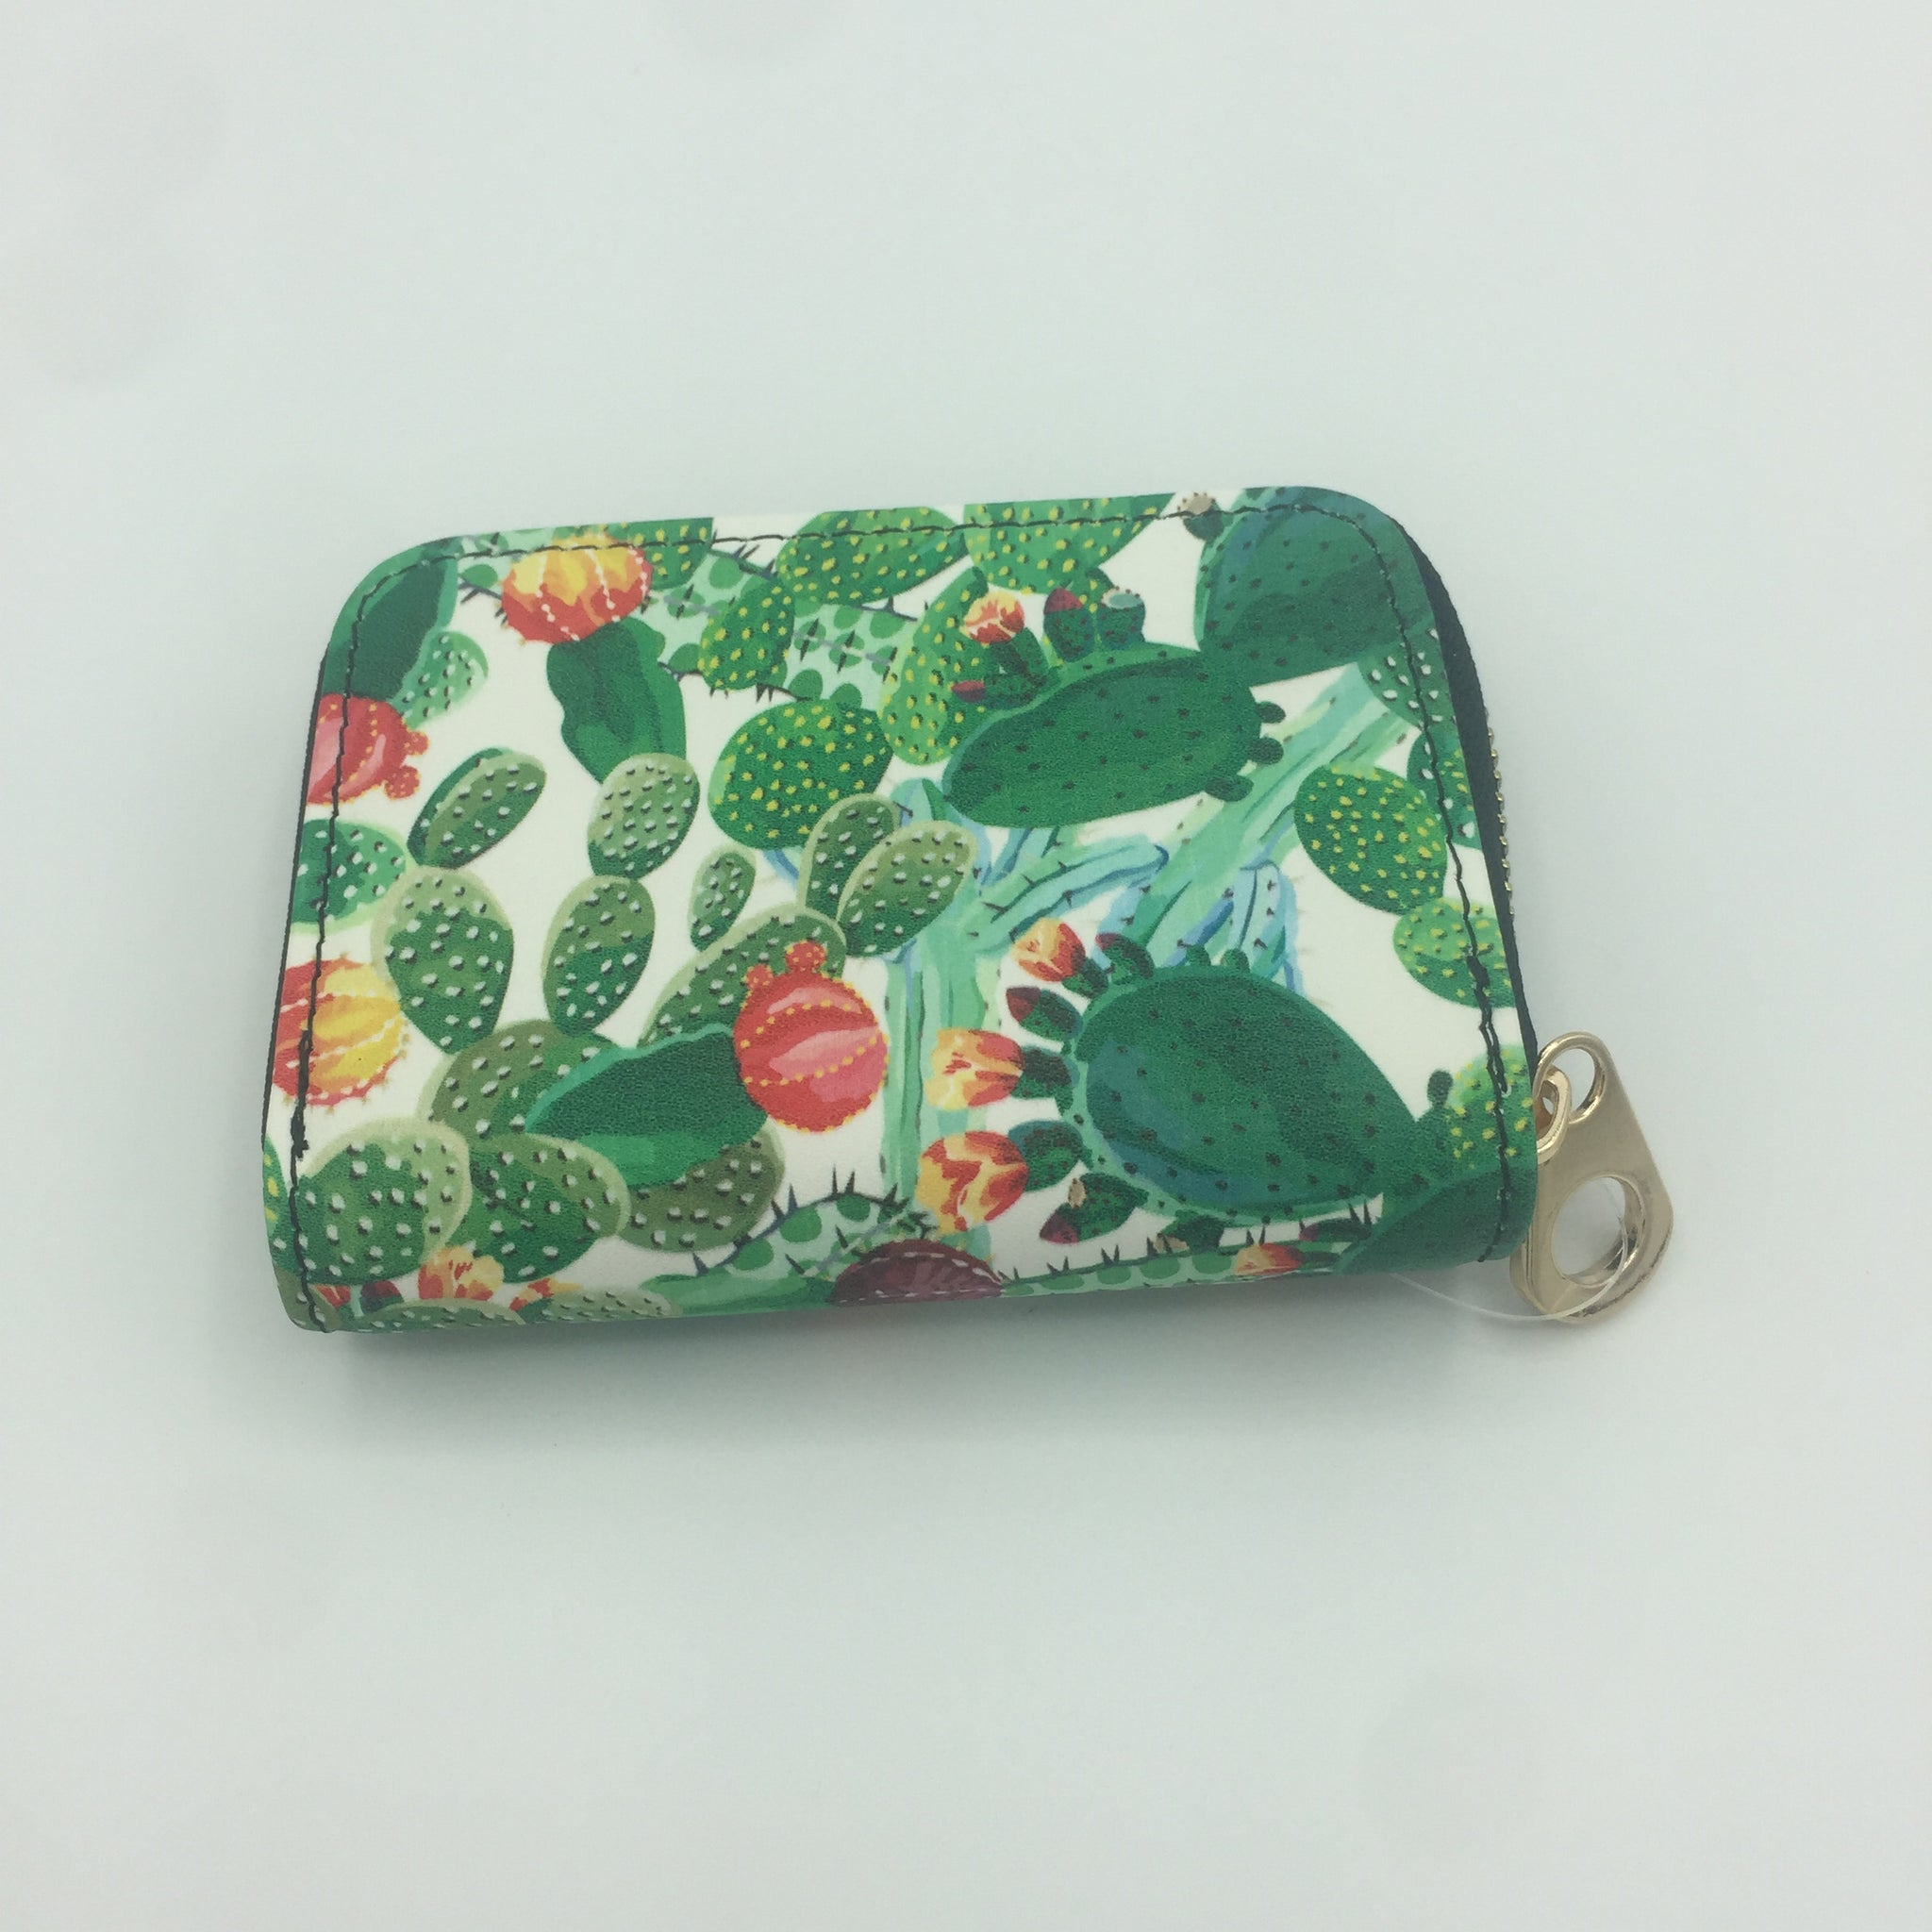 Card Holder with Zipper